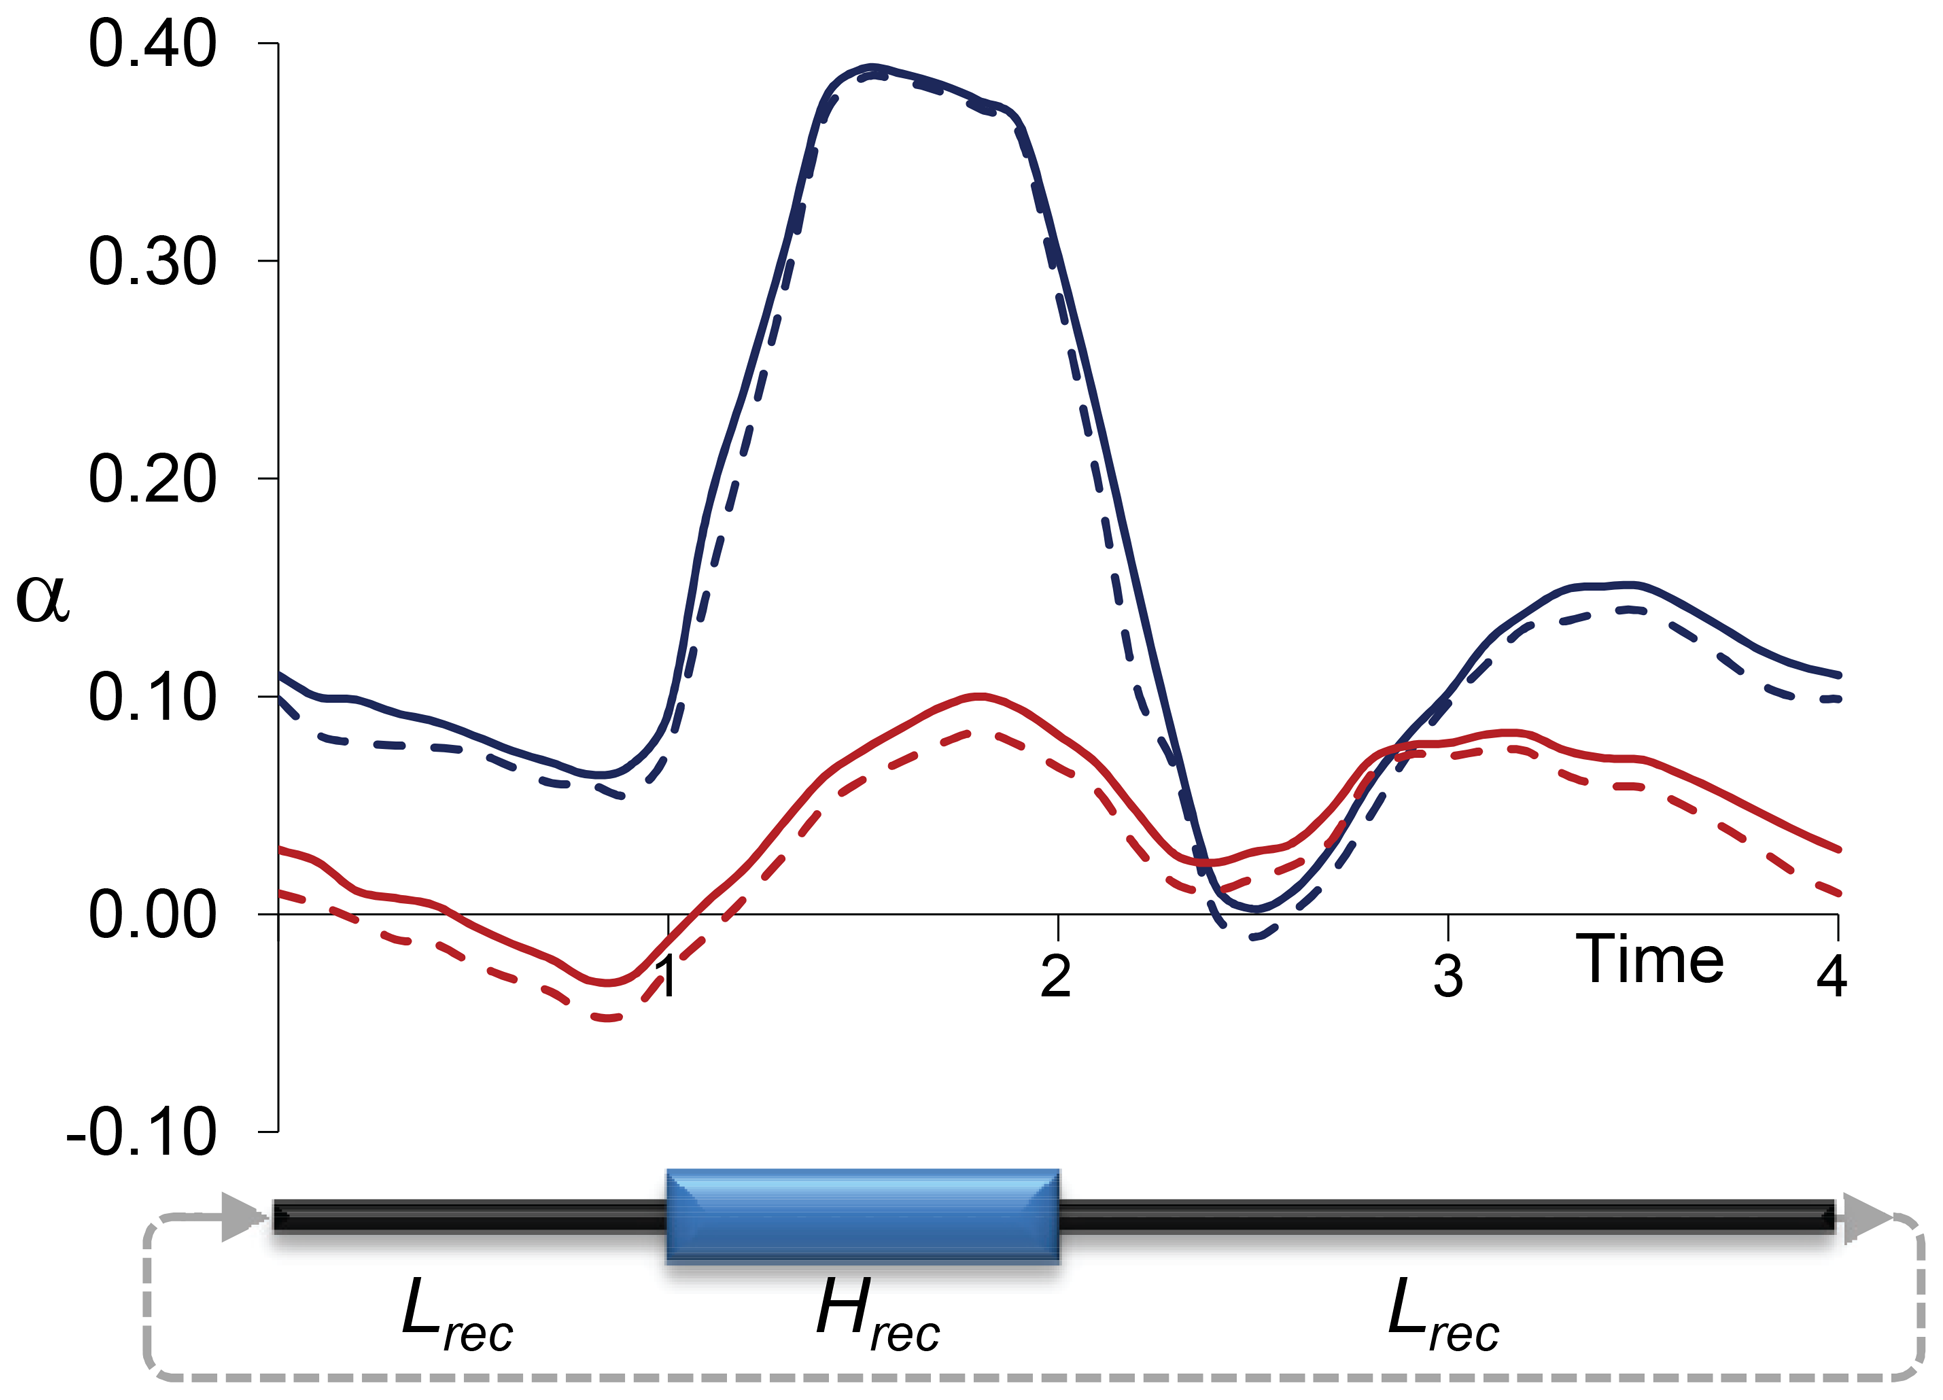 Estimates of <i>α</i> due to temporally fluctuating recombination rates and variable BGS effects.